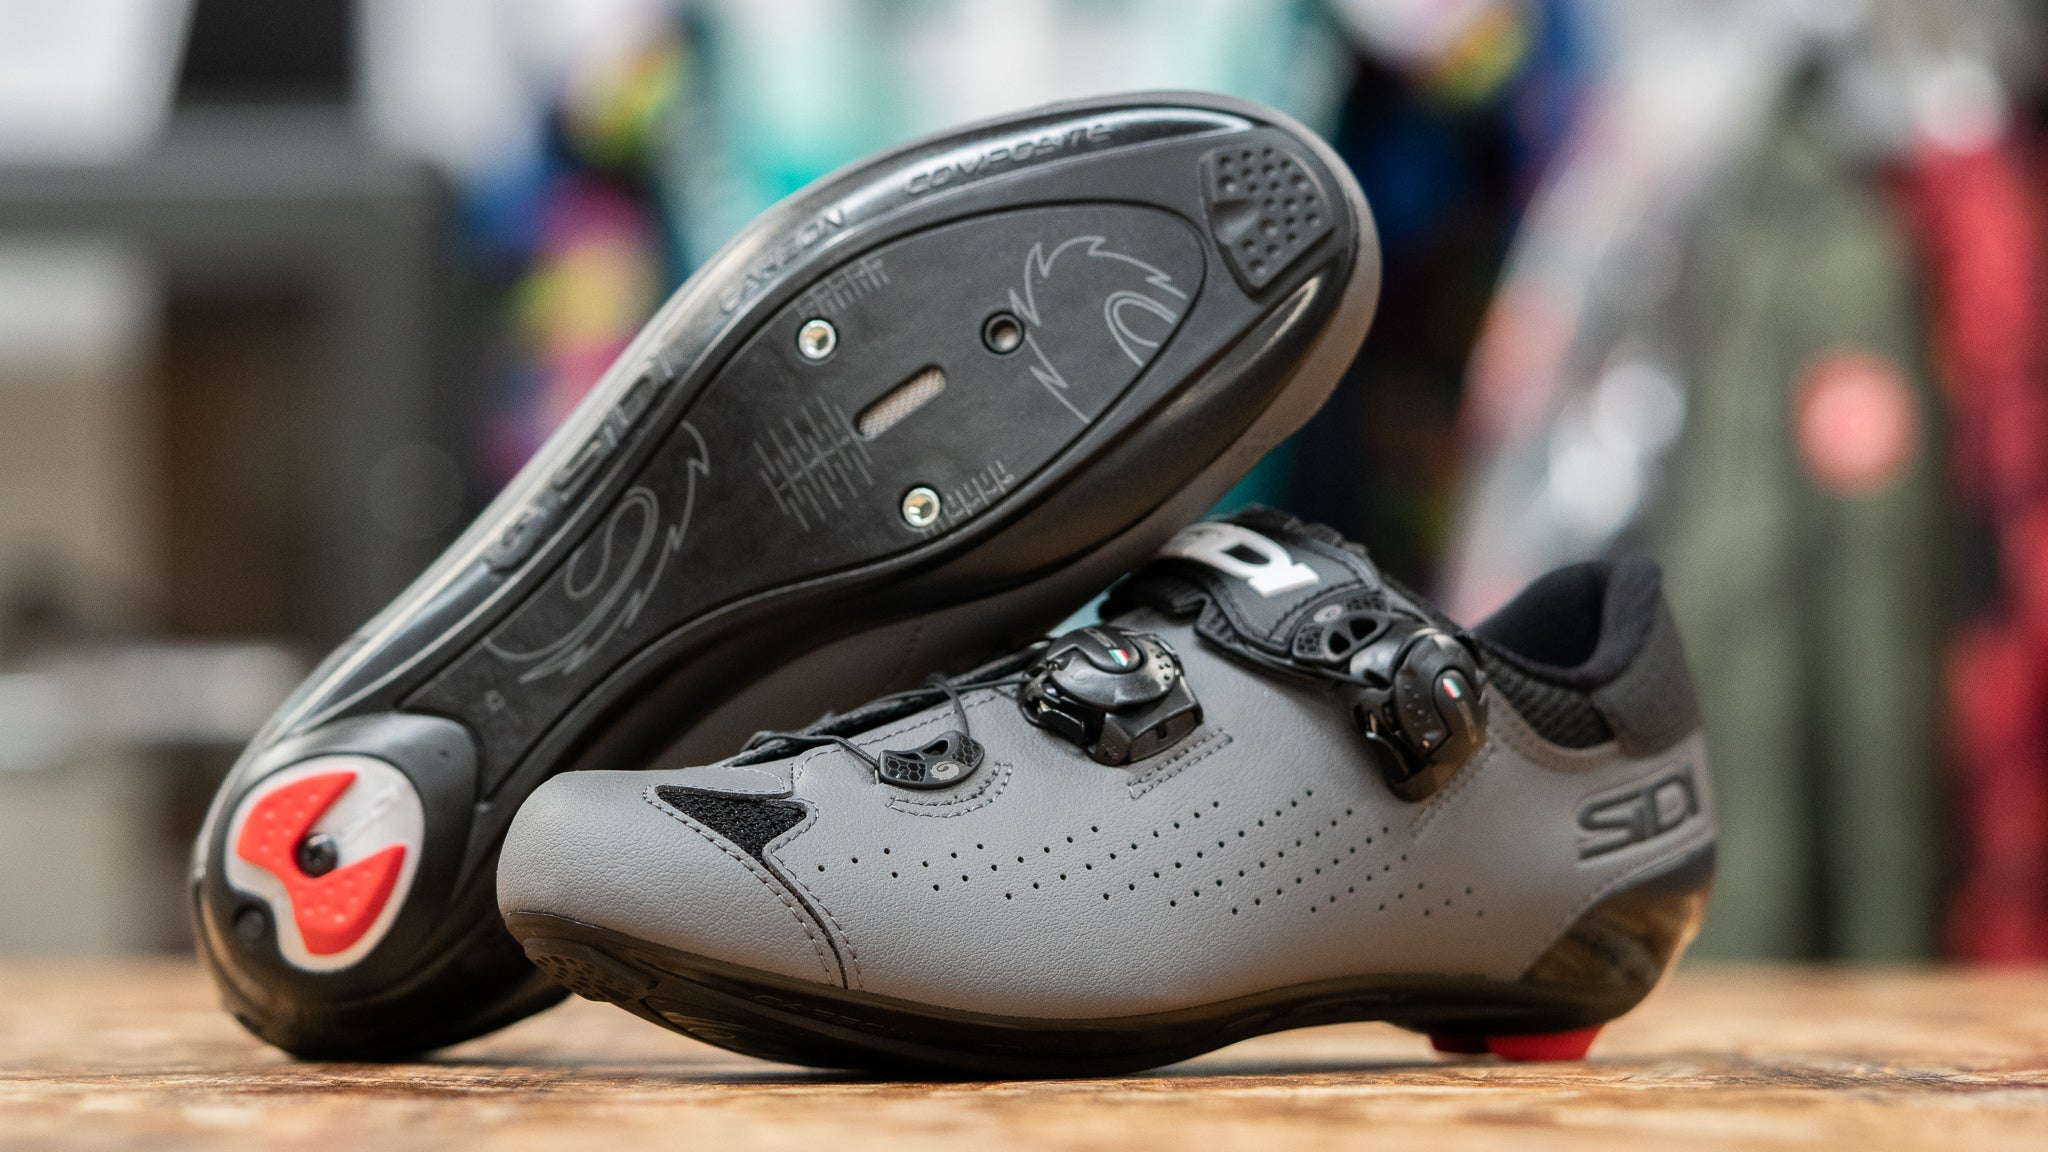 Sidi Genius 10 road cycling shoes stacked on table